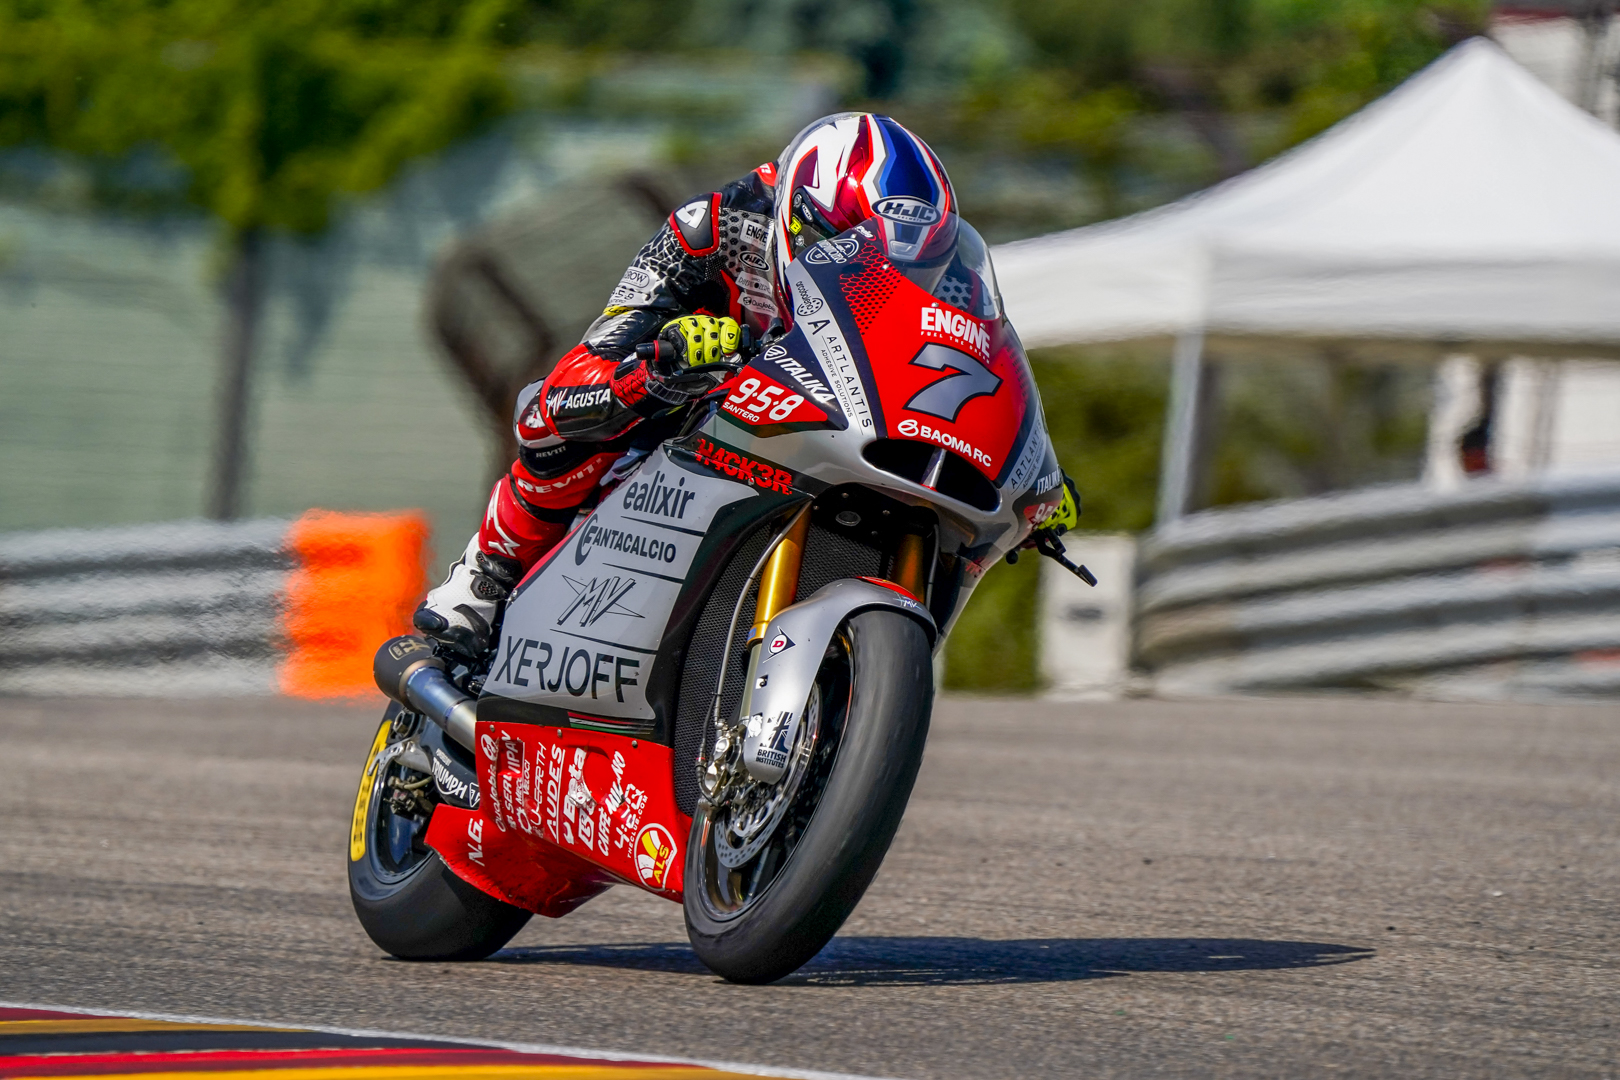 Baldassarri recovers almost 7 tenths in Q1 compared to FP3, complicated qualifying for Corsi